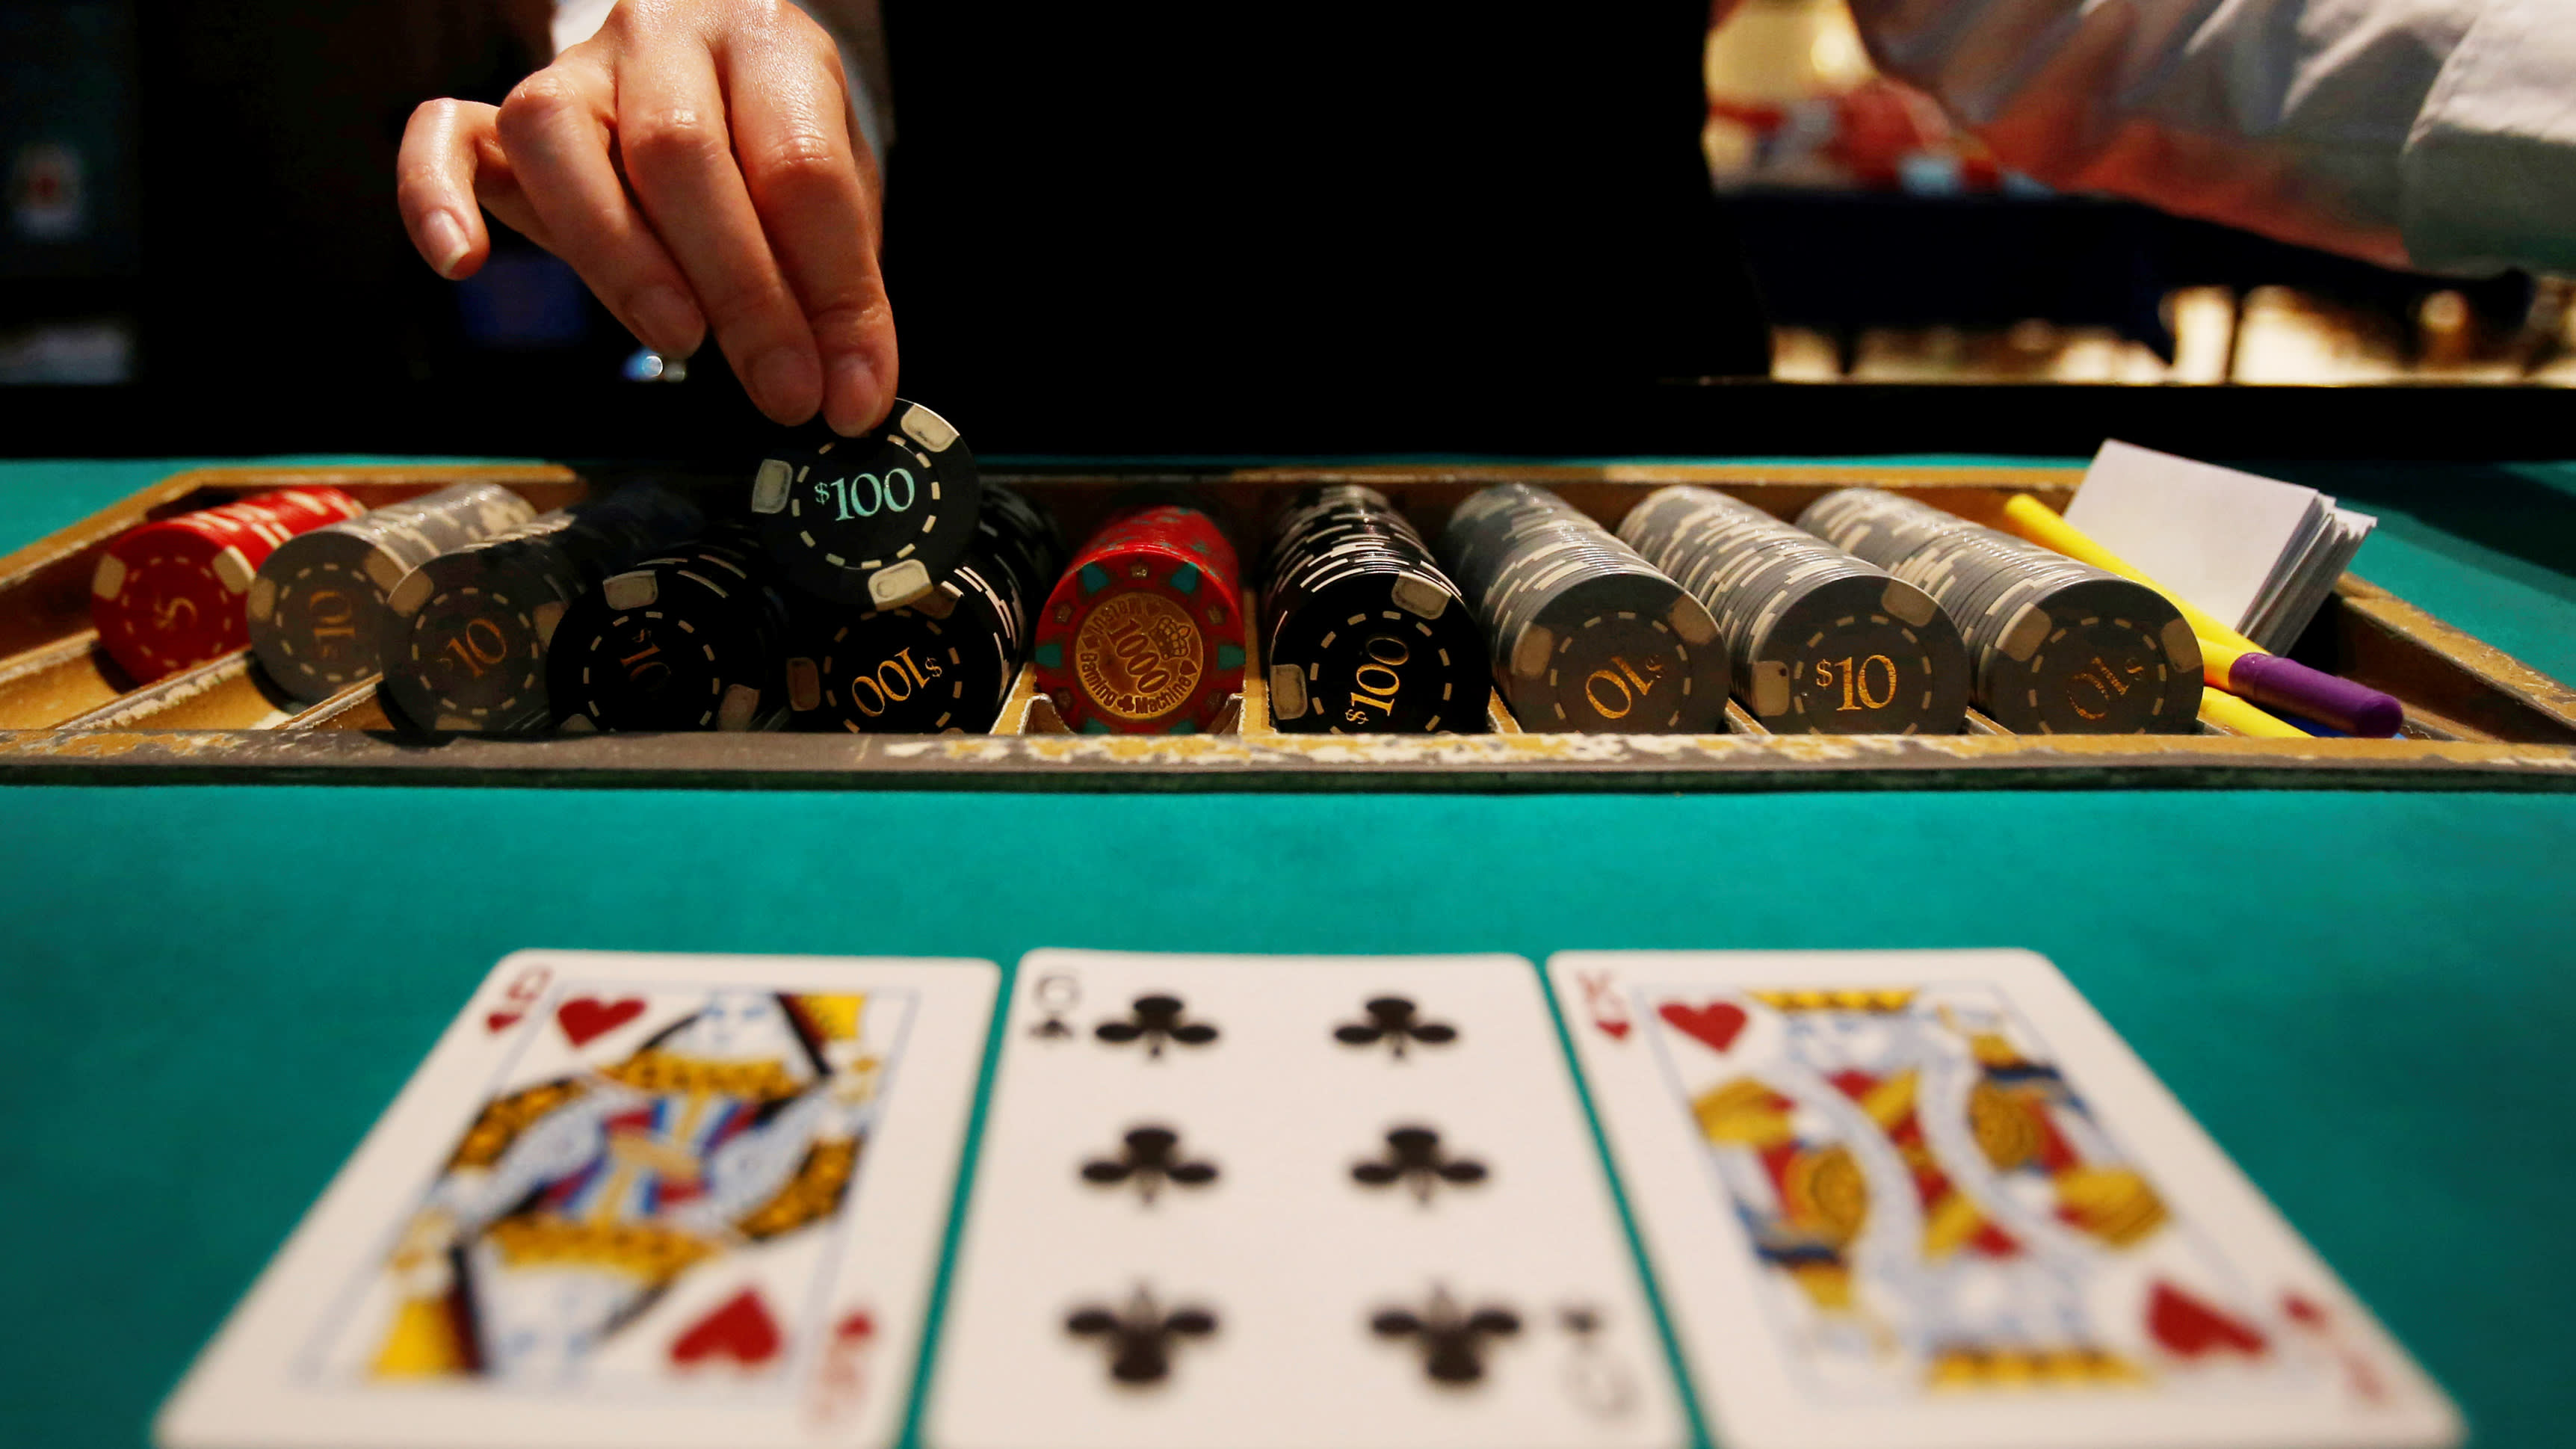 Online casino poker and other casino games: is there anything better than this?